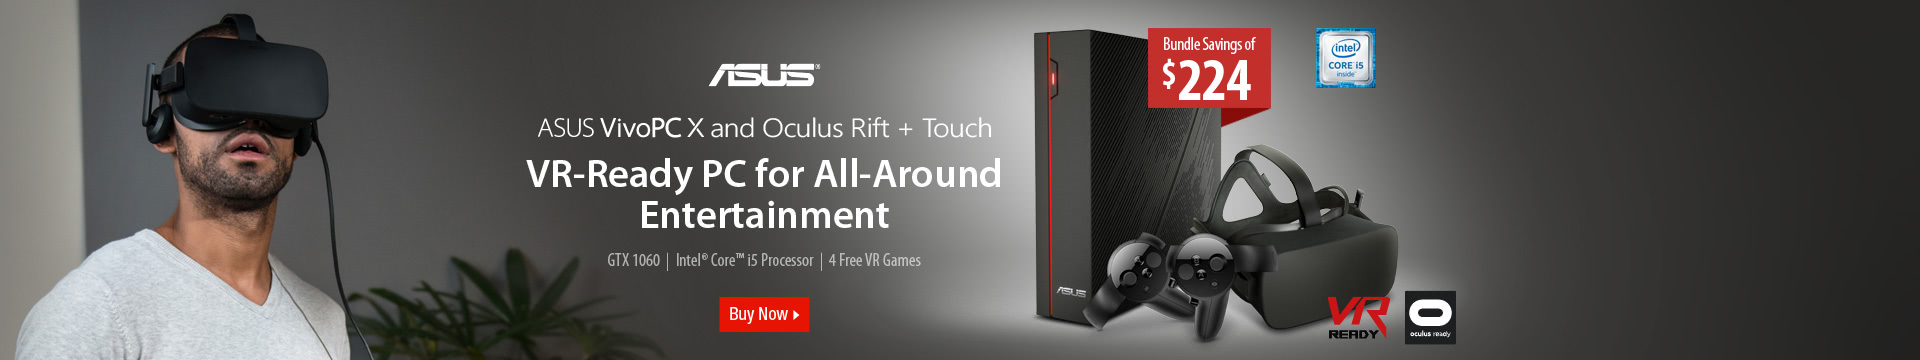 VR-Ready PC for All-Around Entertainment